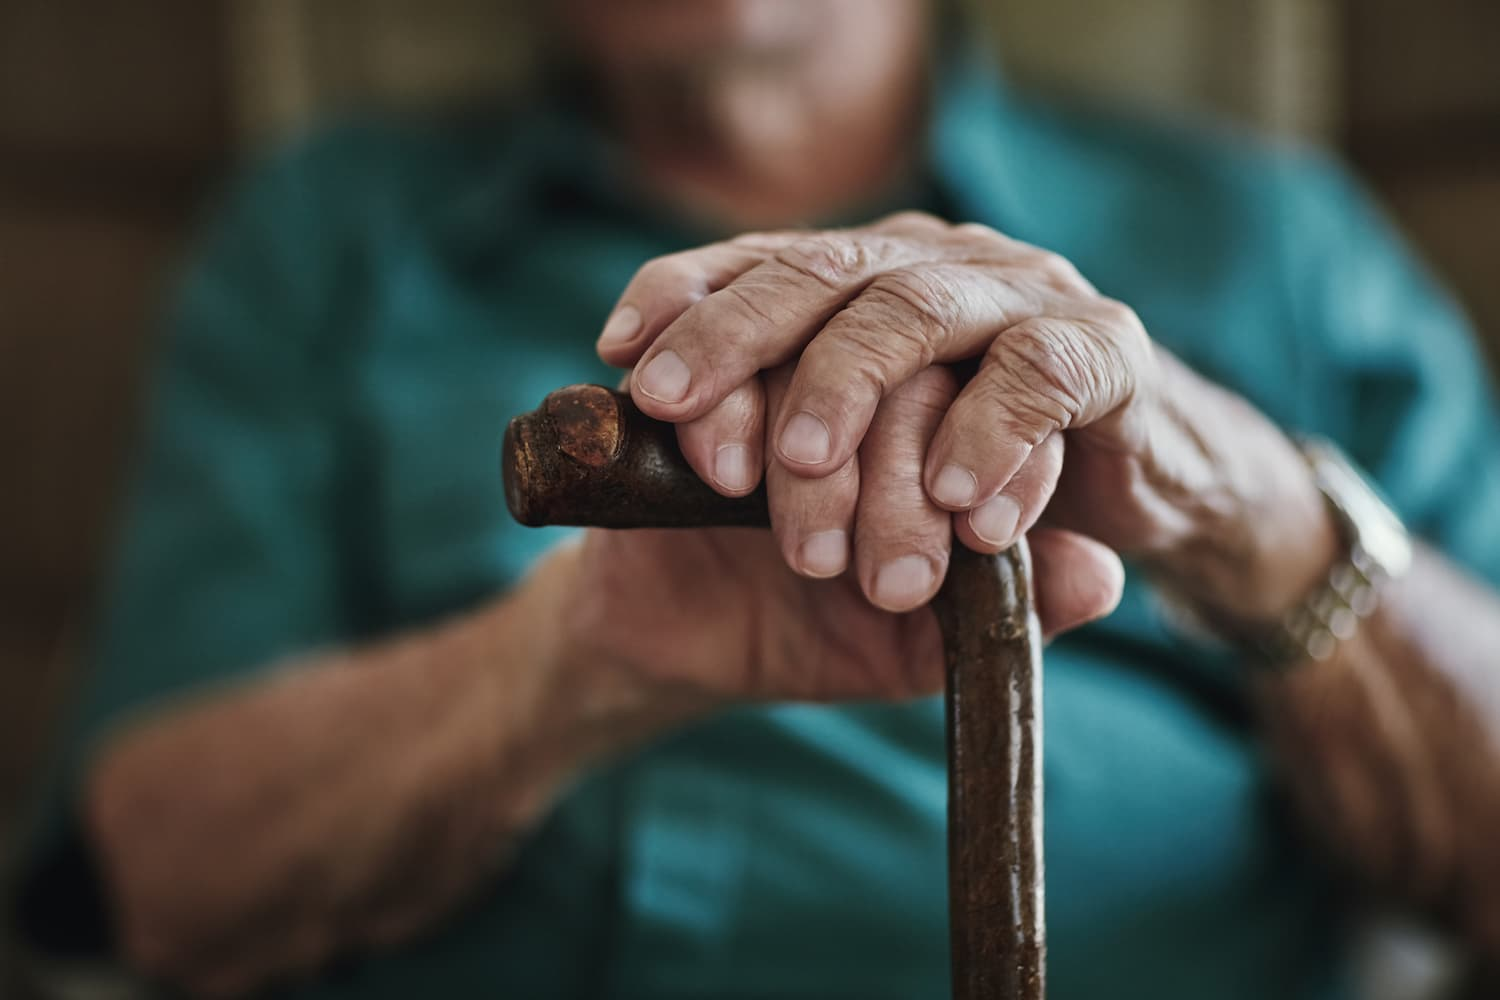 Close-up of hands and cane